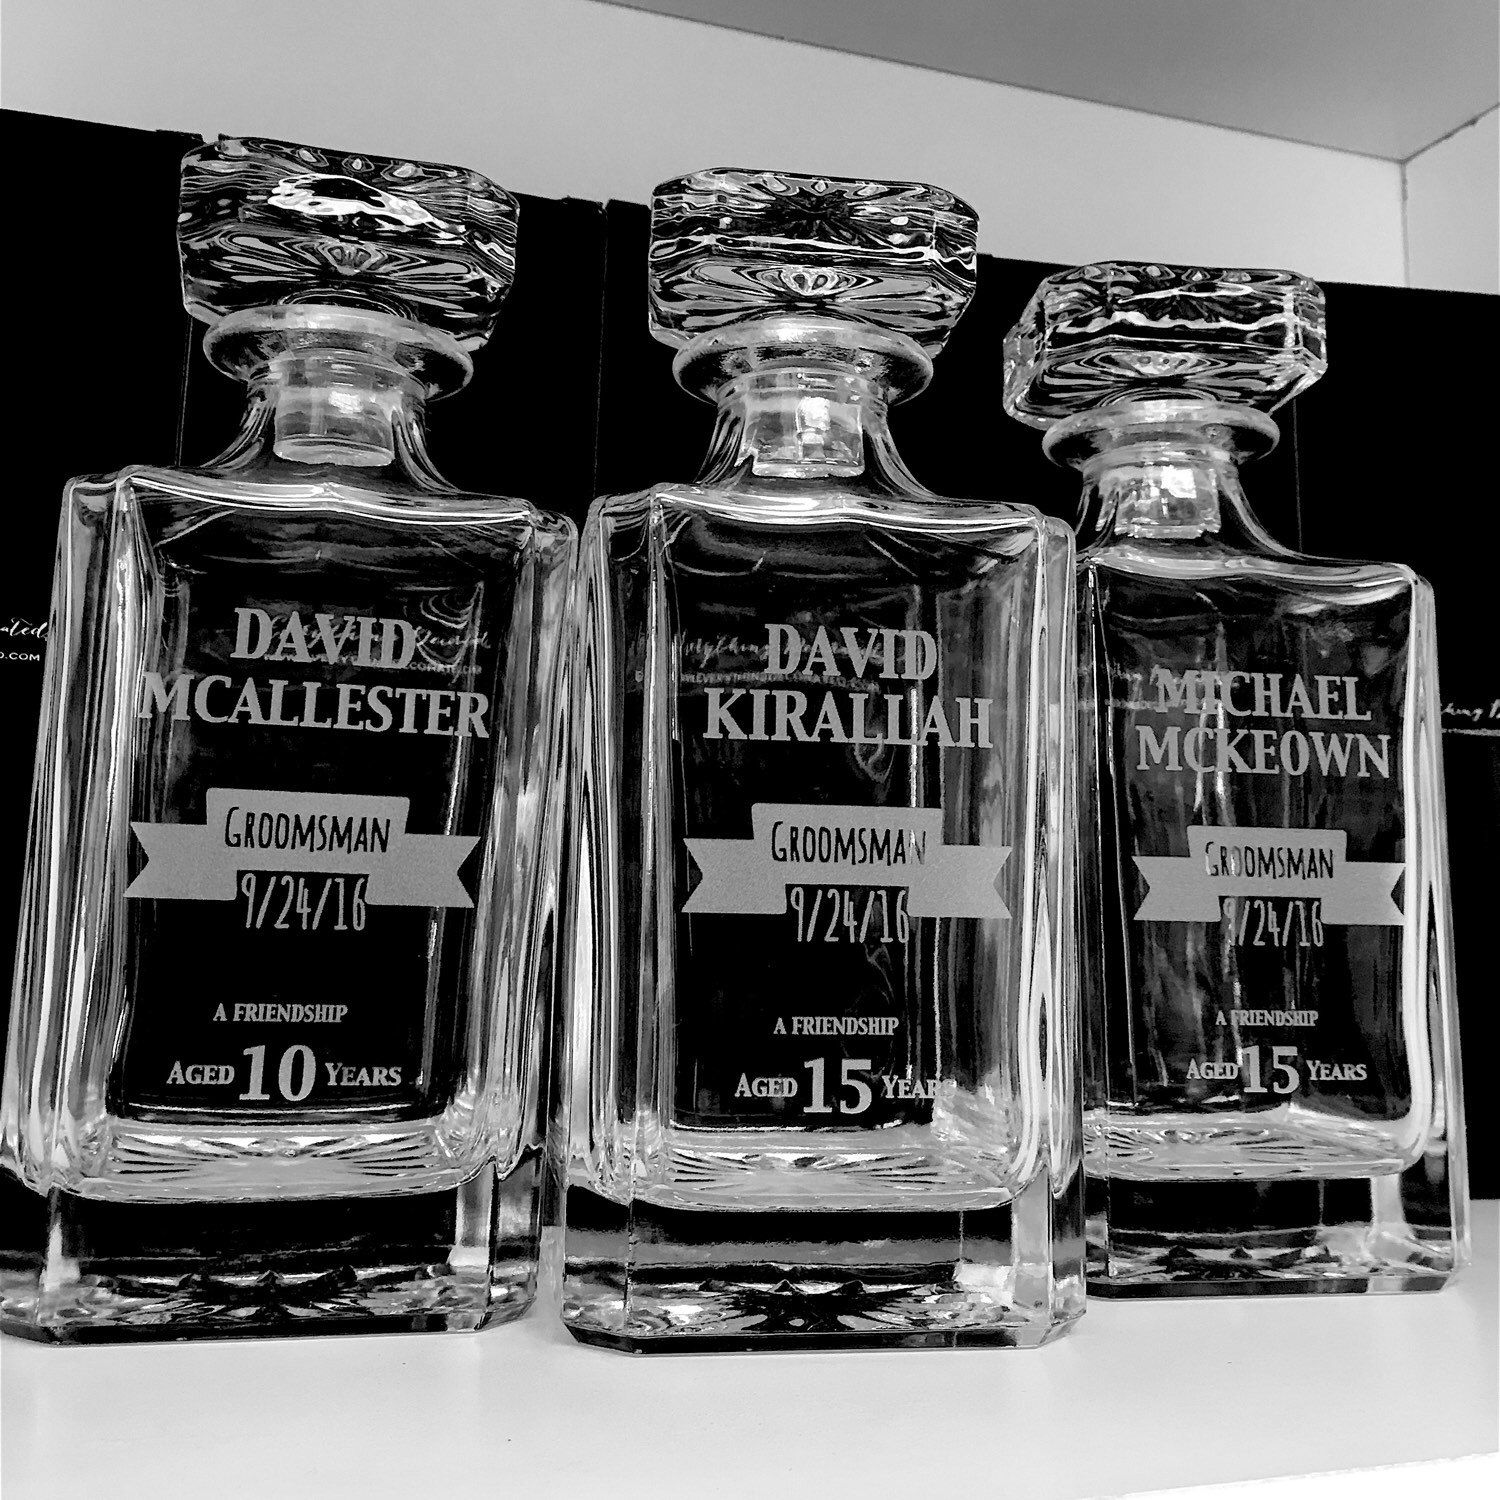 Personalized Wedding Gifts For Groomsmen: Custom Engraving, Decanter And Favors